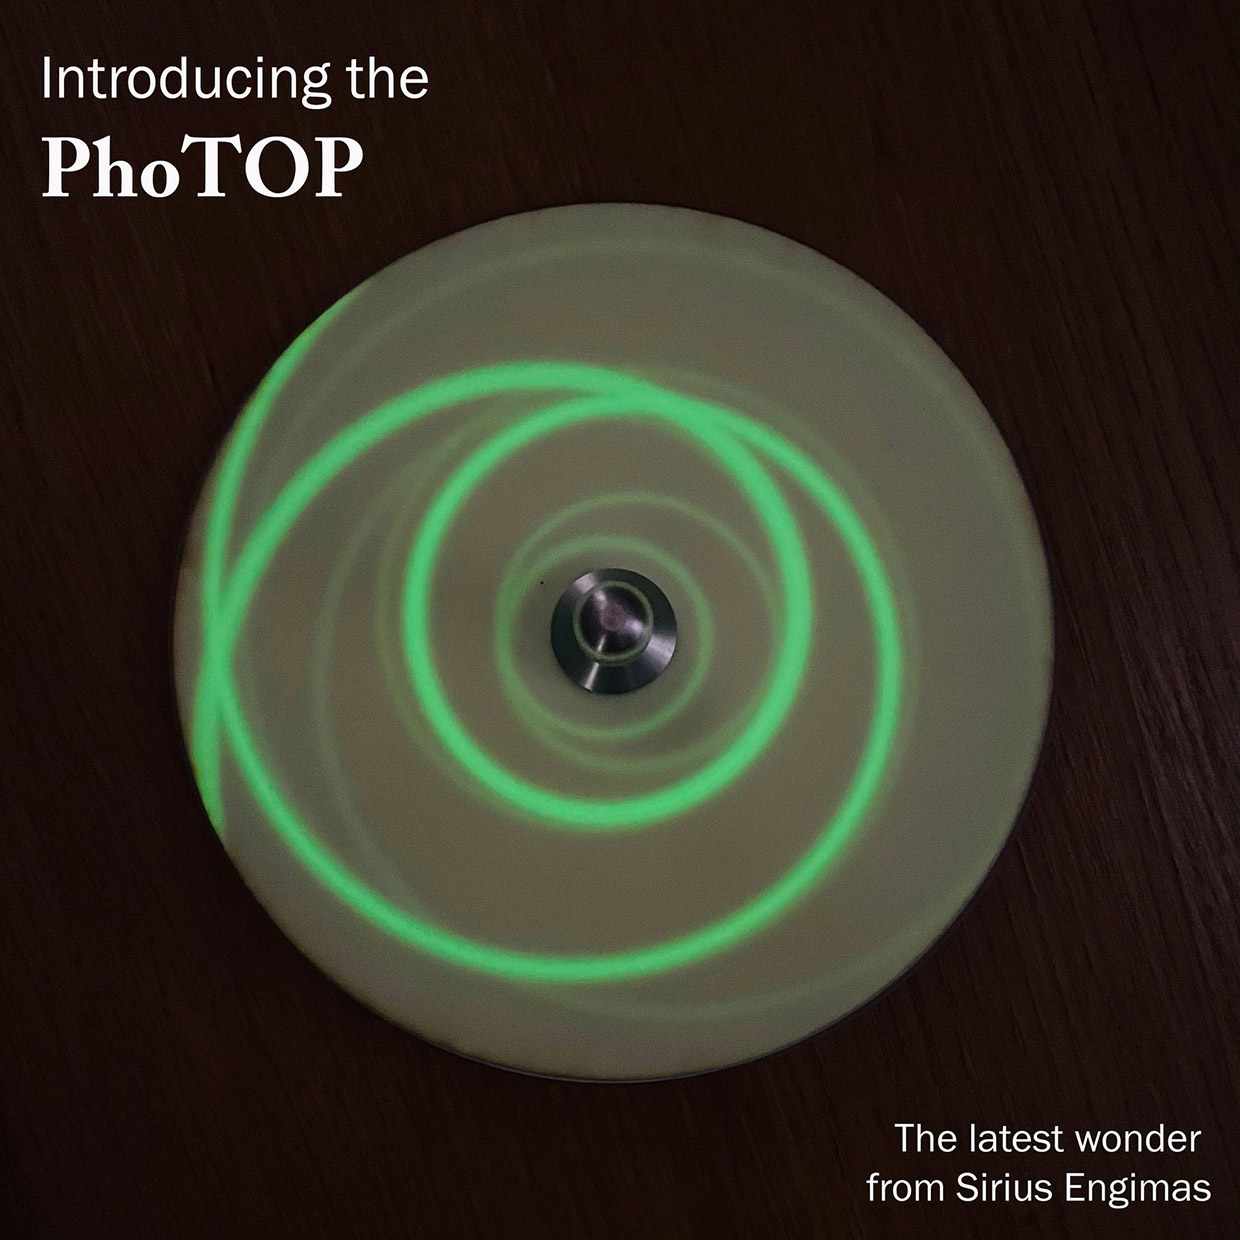 PhoTOP Spinning Toy